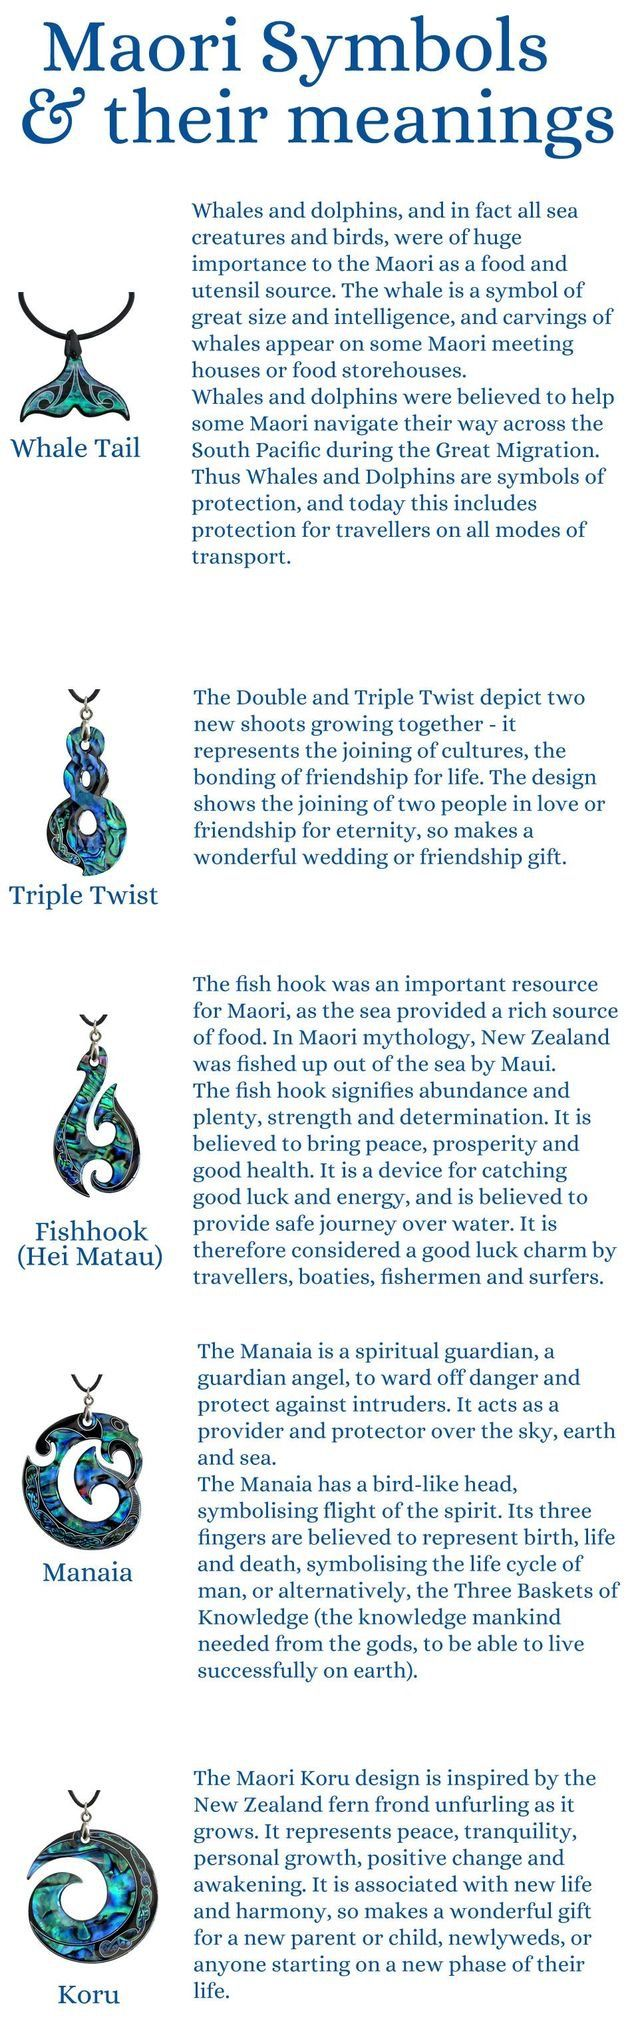 1427 best hieroglyphs psychic writing images on pinterest find this pin and more on hieroglyphs psychic writing by psychic20 biocorpaavc